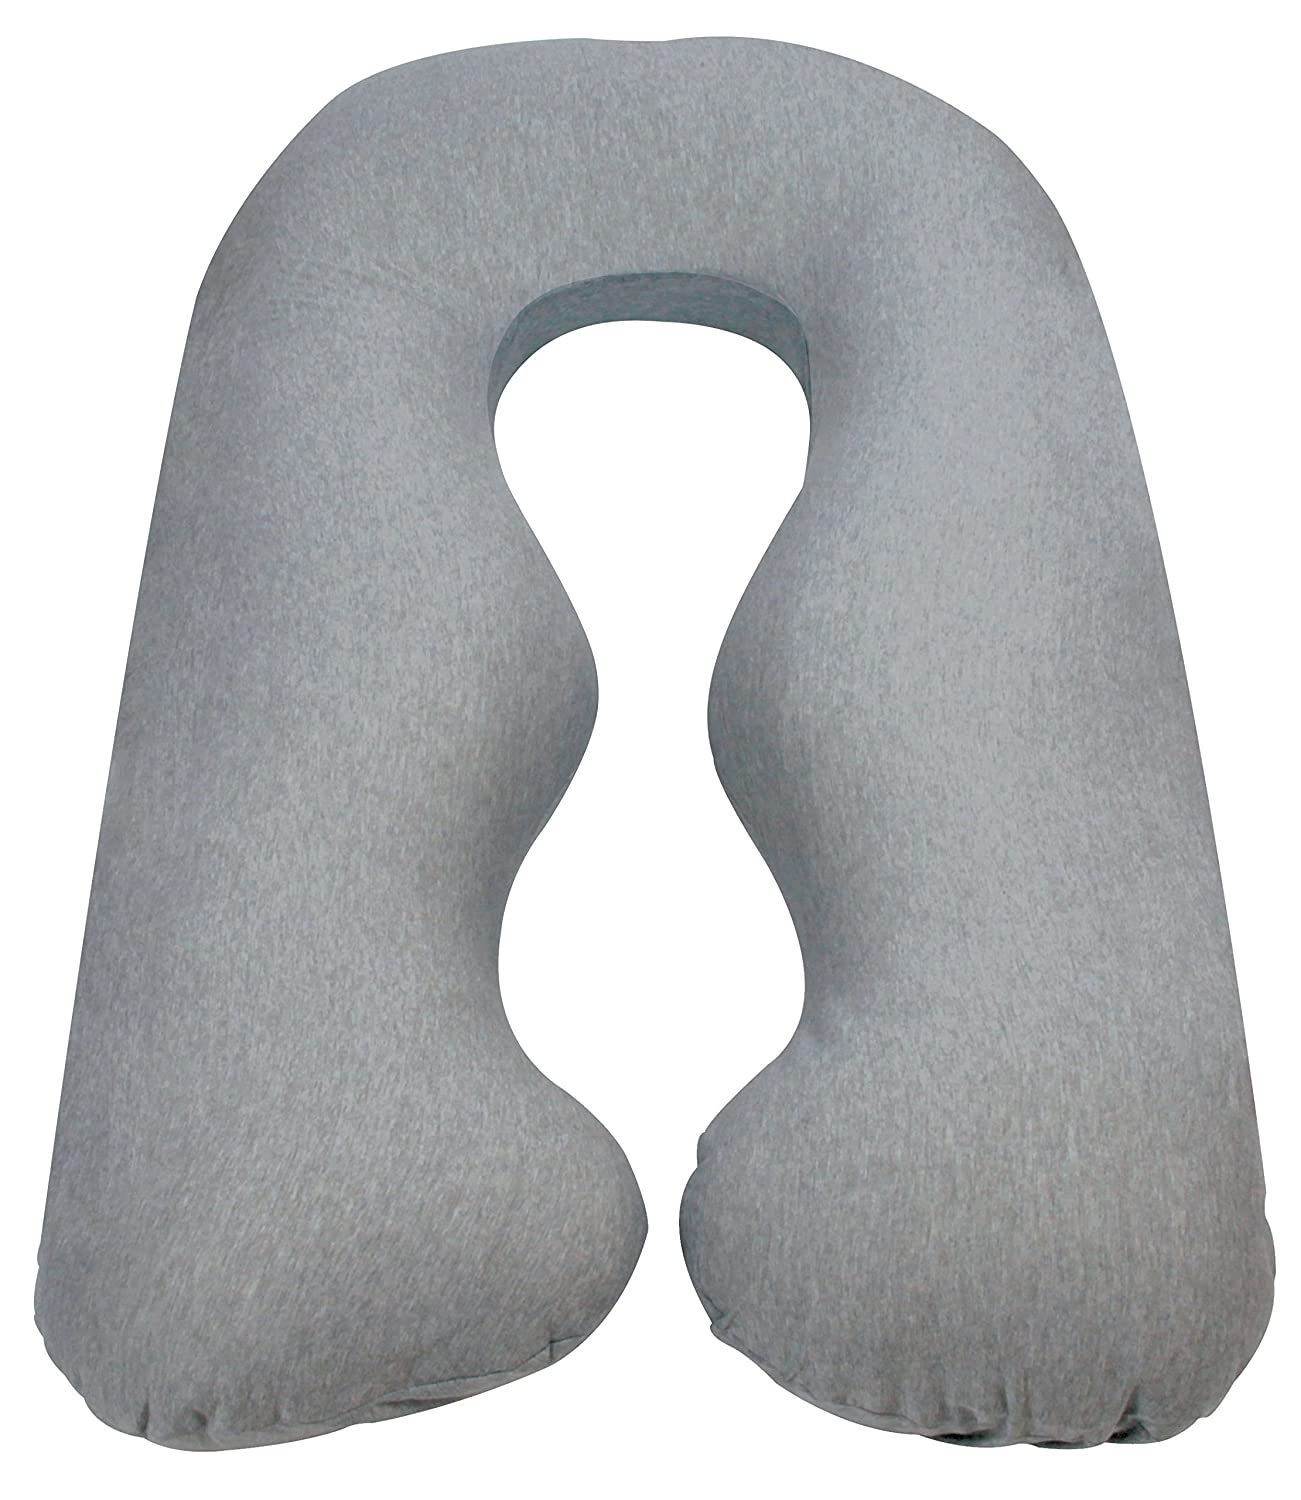 Leachco Back N Belly Chic Body Pillow Replacement Cover (Gray)